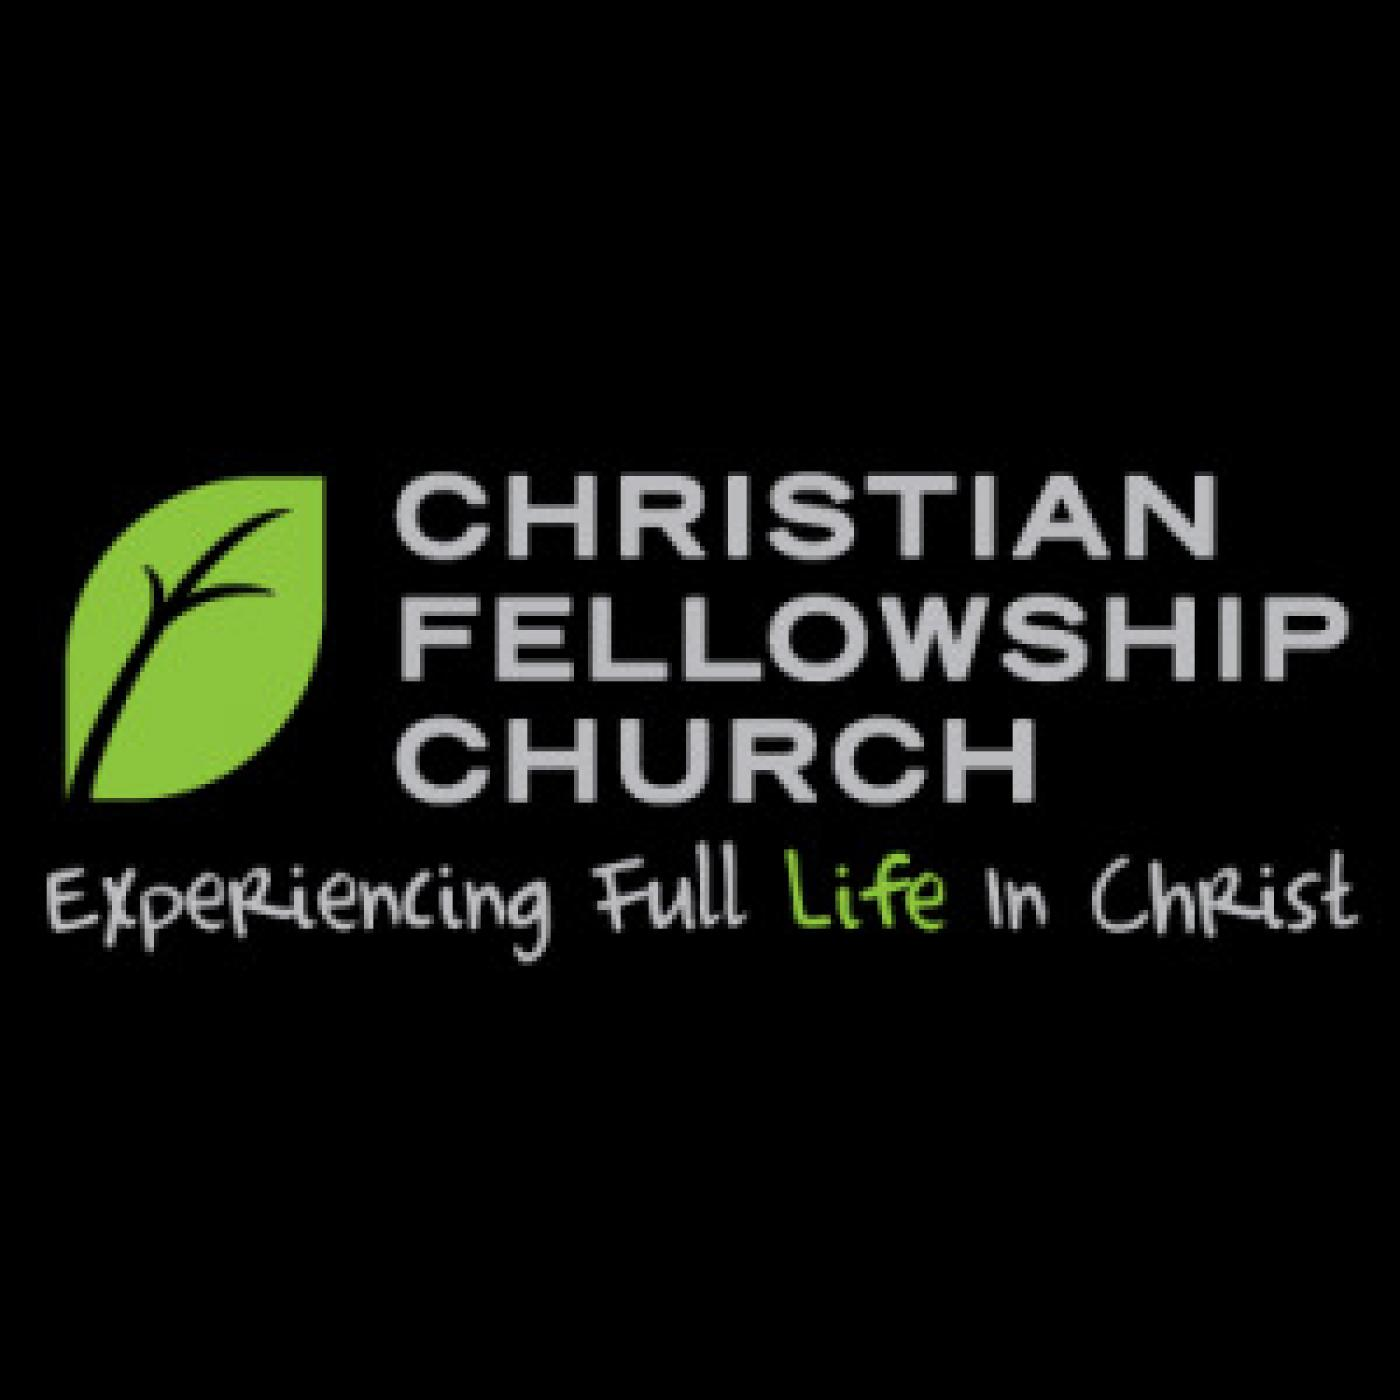 Christian Fellowship Church Sermons